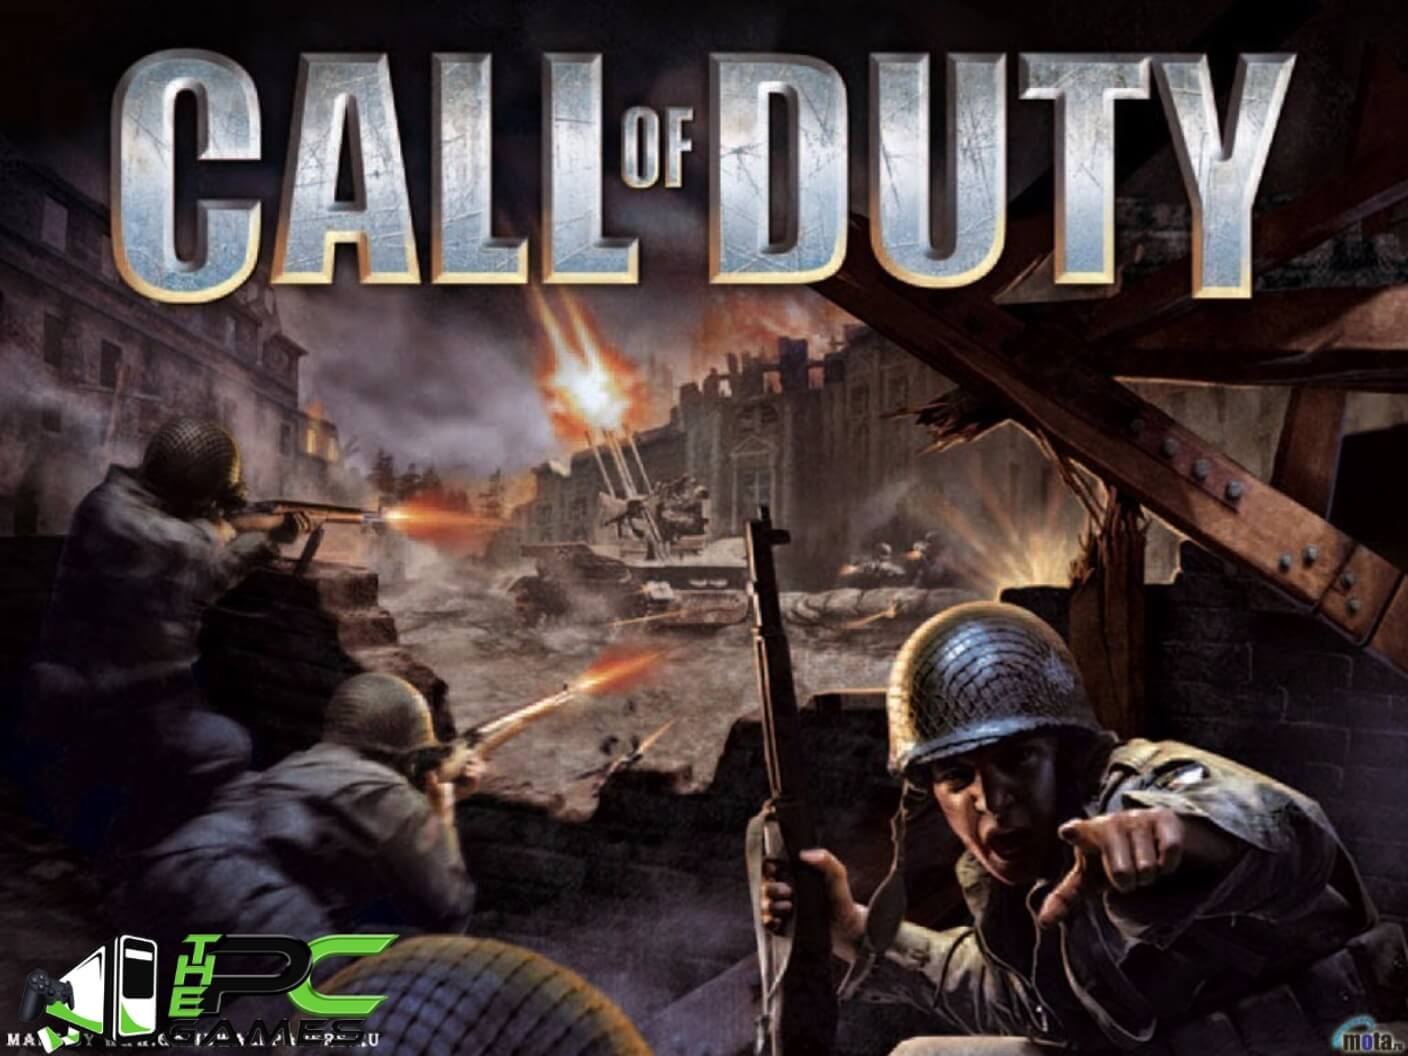 Free Games For Free : Call of duty pc game full version free download